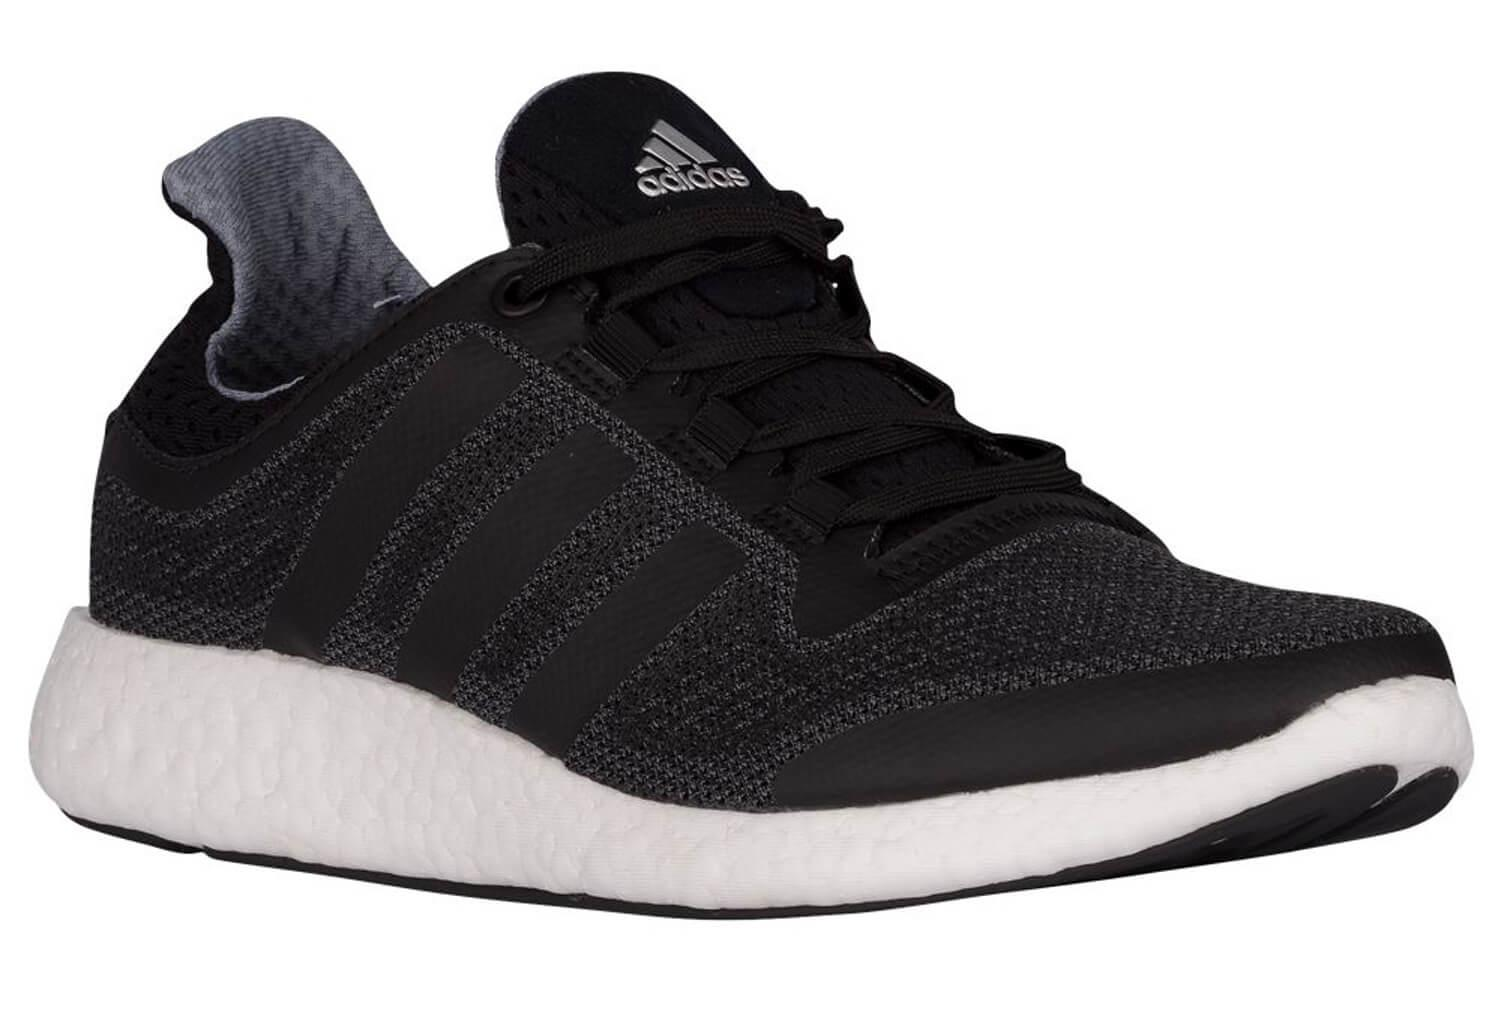 f997e83c84acc Adidas Pure Boost 2.0 Review - Buy or Not in May 2019